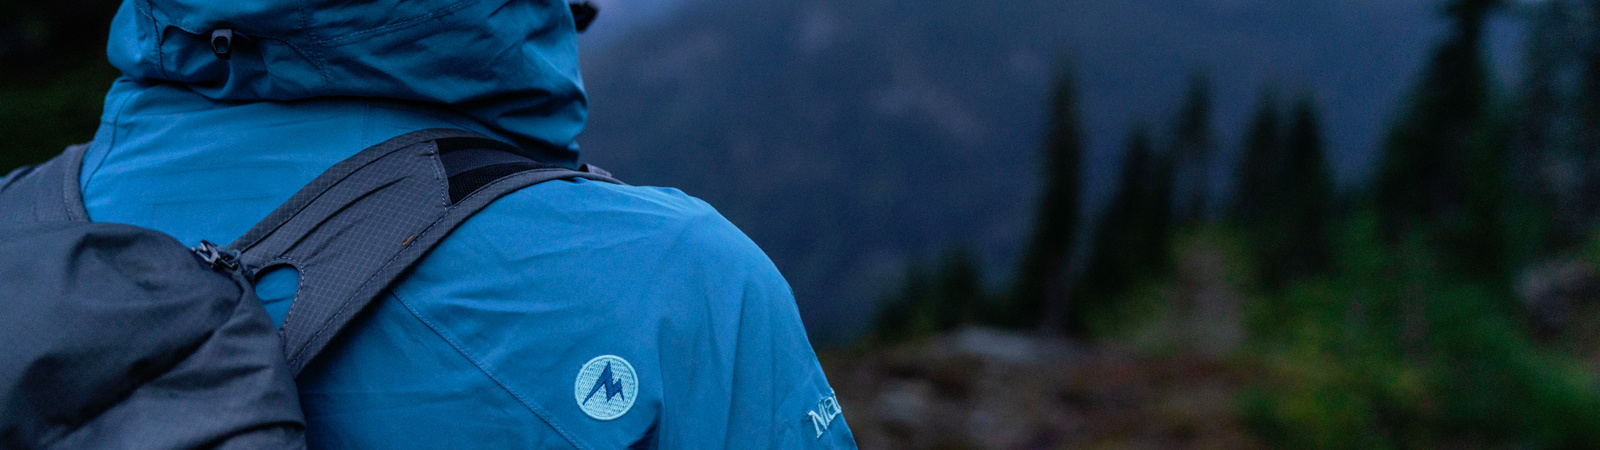 Sustainable, upcycled rainwear with waterproof performance that won't wash out or wear out.